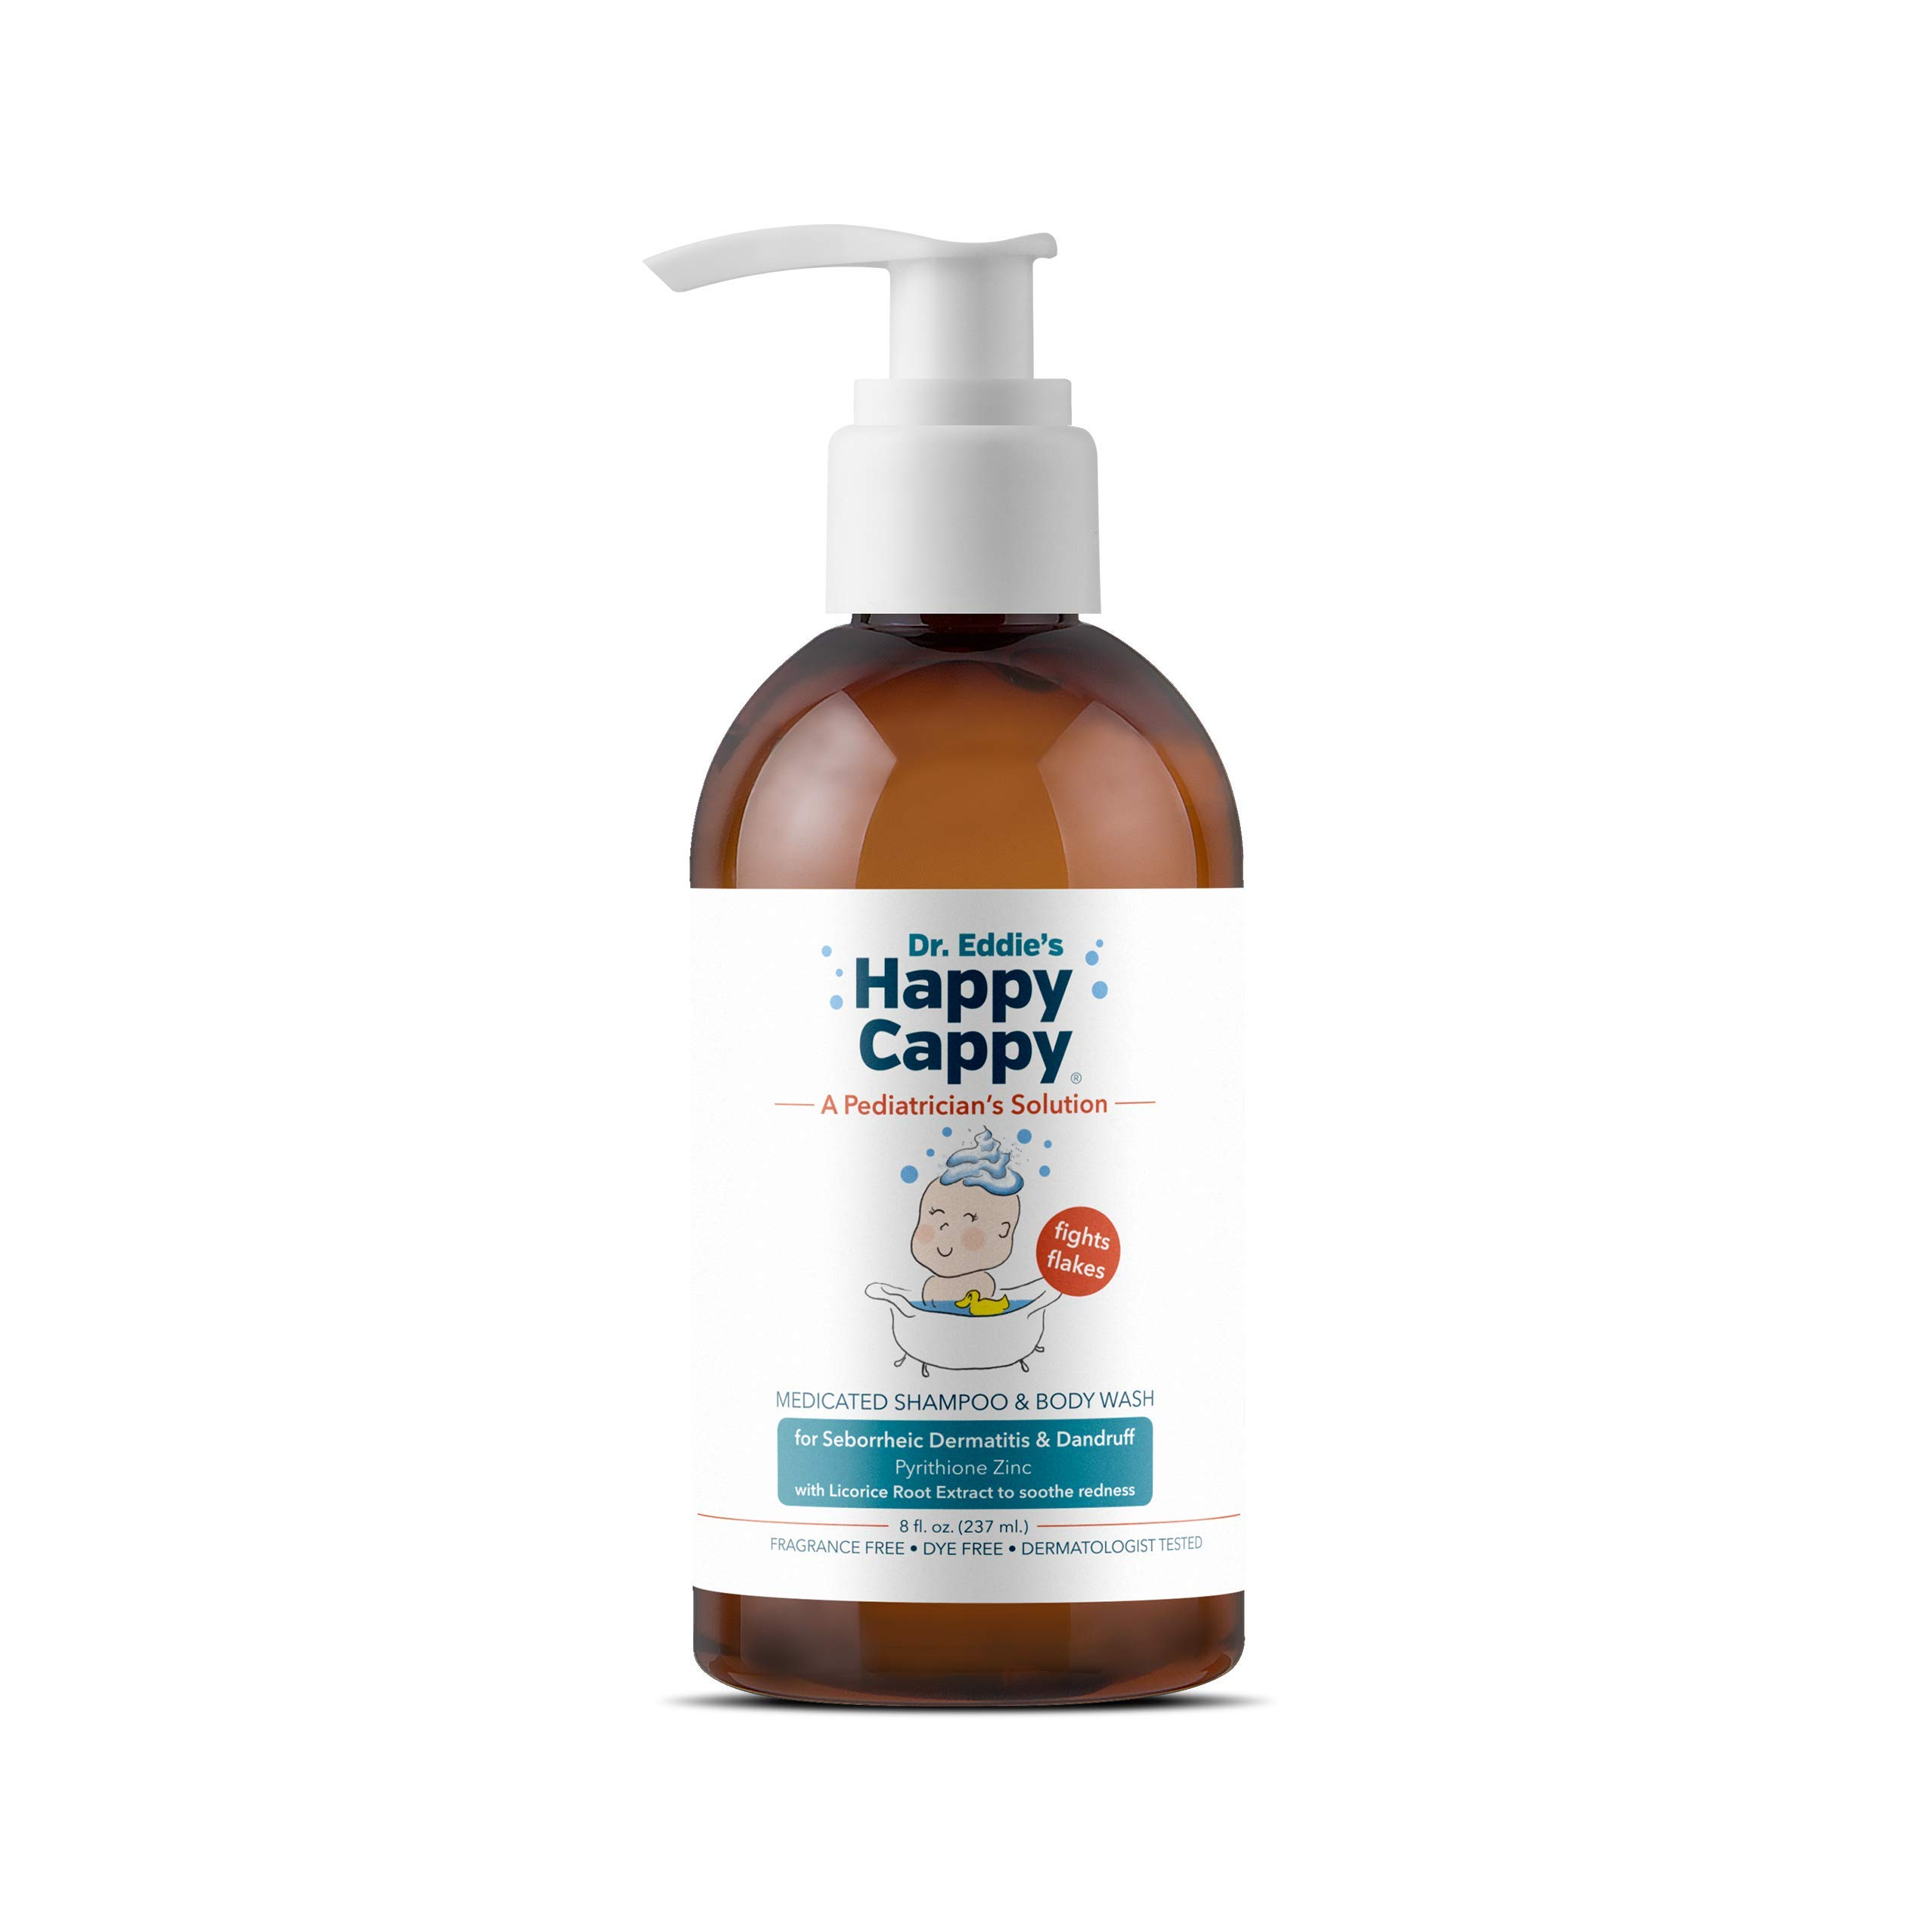 Dr. Eddie's Happy Cappy Medicated Shampoo for Children, Treats Dandruff and Seborrheic Dermatitis, Clinically Tested, Fragrance Free, Stops Flakes and Redness on Sensitive Scalps and Skin, 8 oz by Happy Cappy